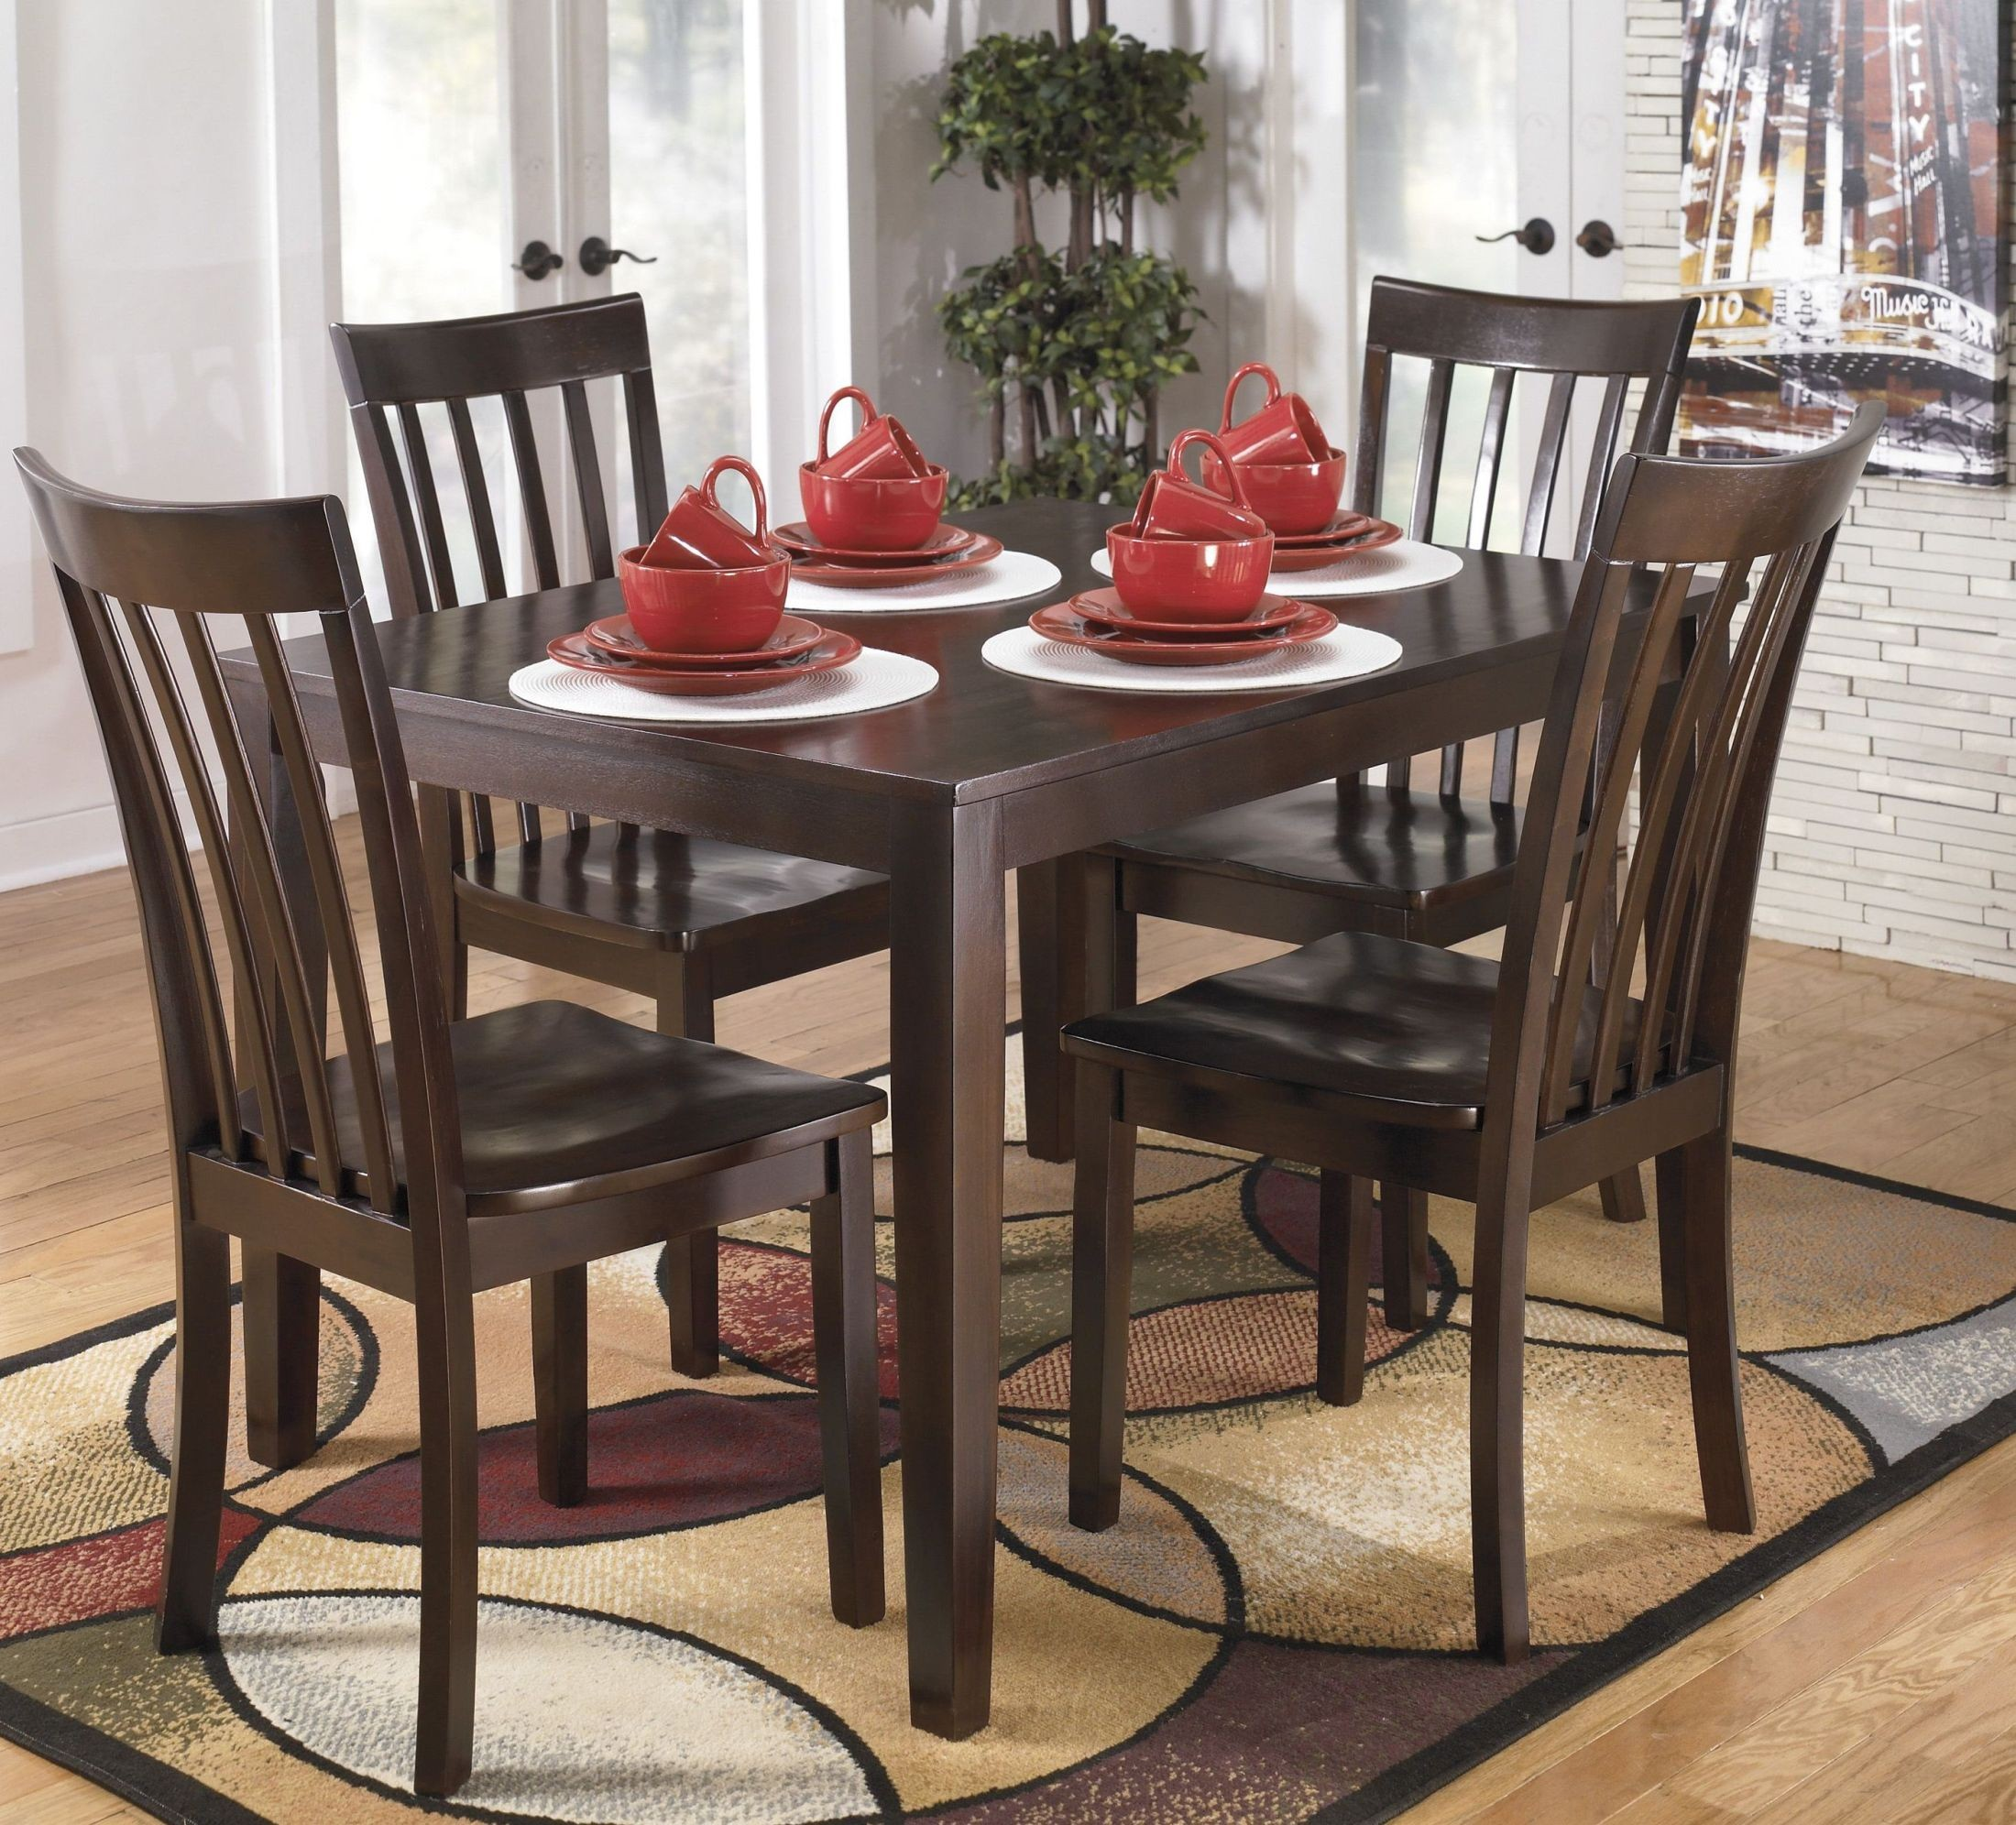 Ashley Furniture Hyland 5 Piece Dining Set With: Hyland 5 Pcs Casual Dining Set From Ashley (D258-225